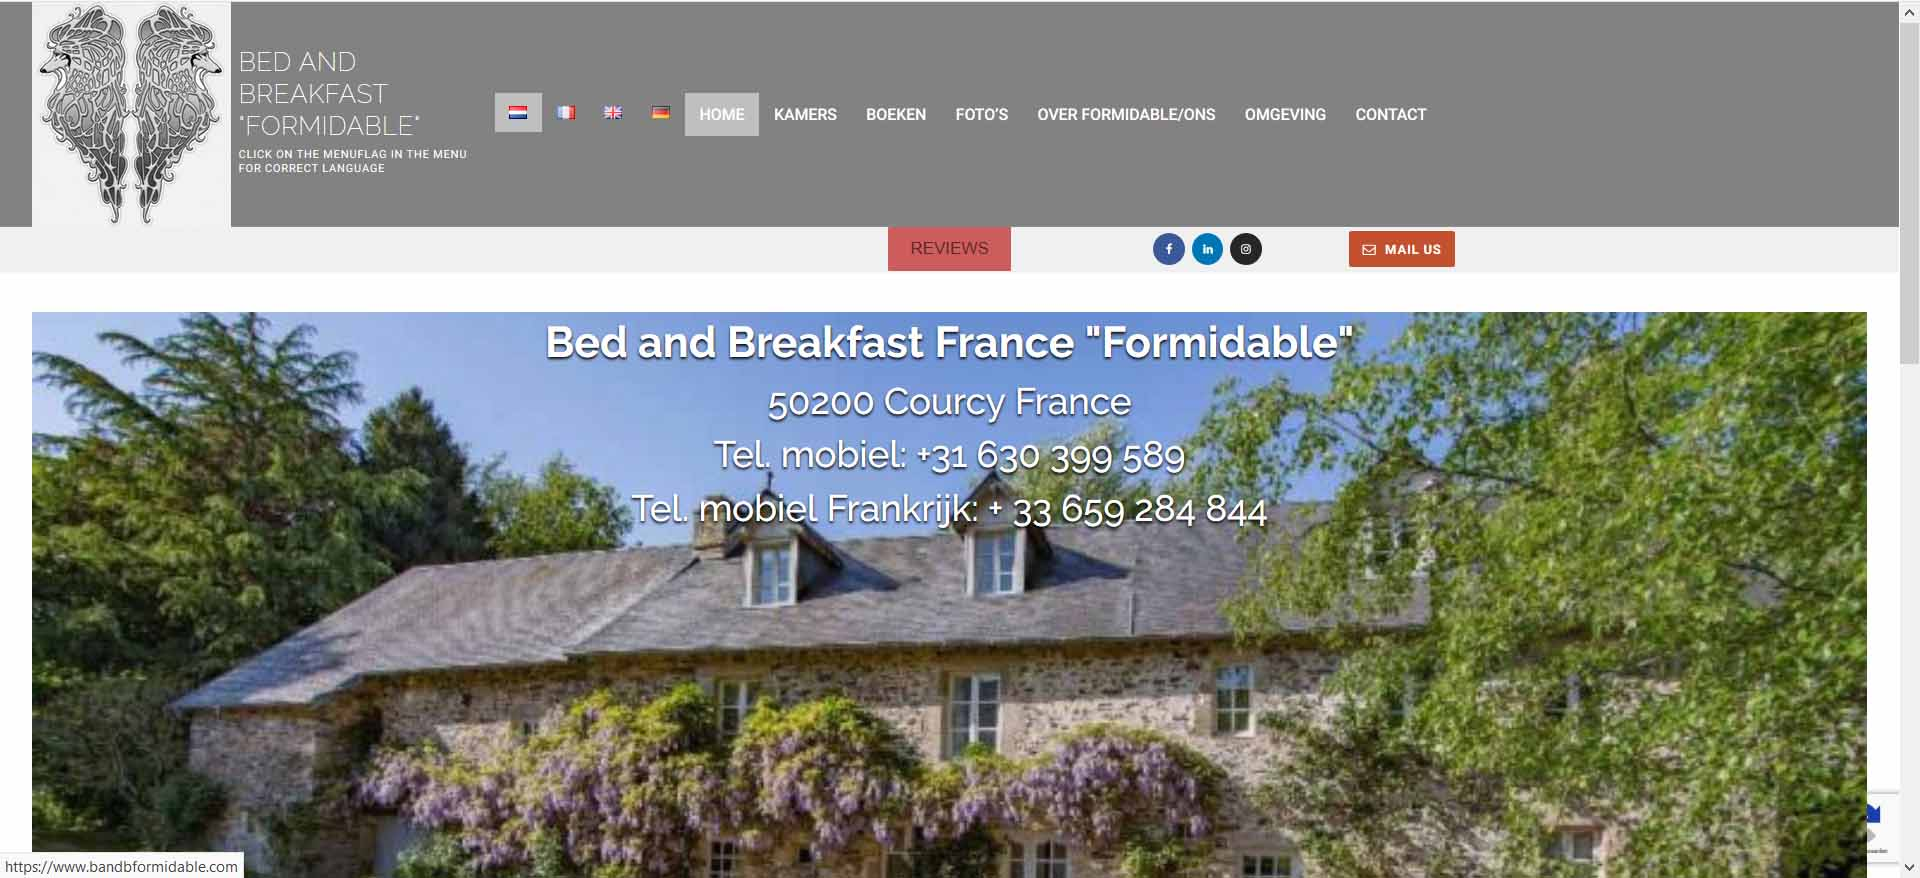 Bed and Breakfast Formidable